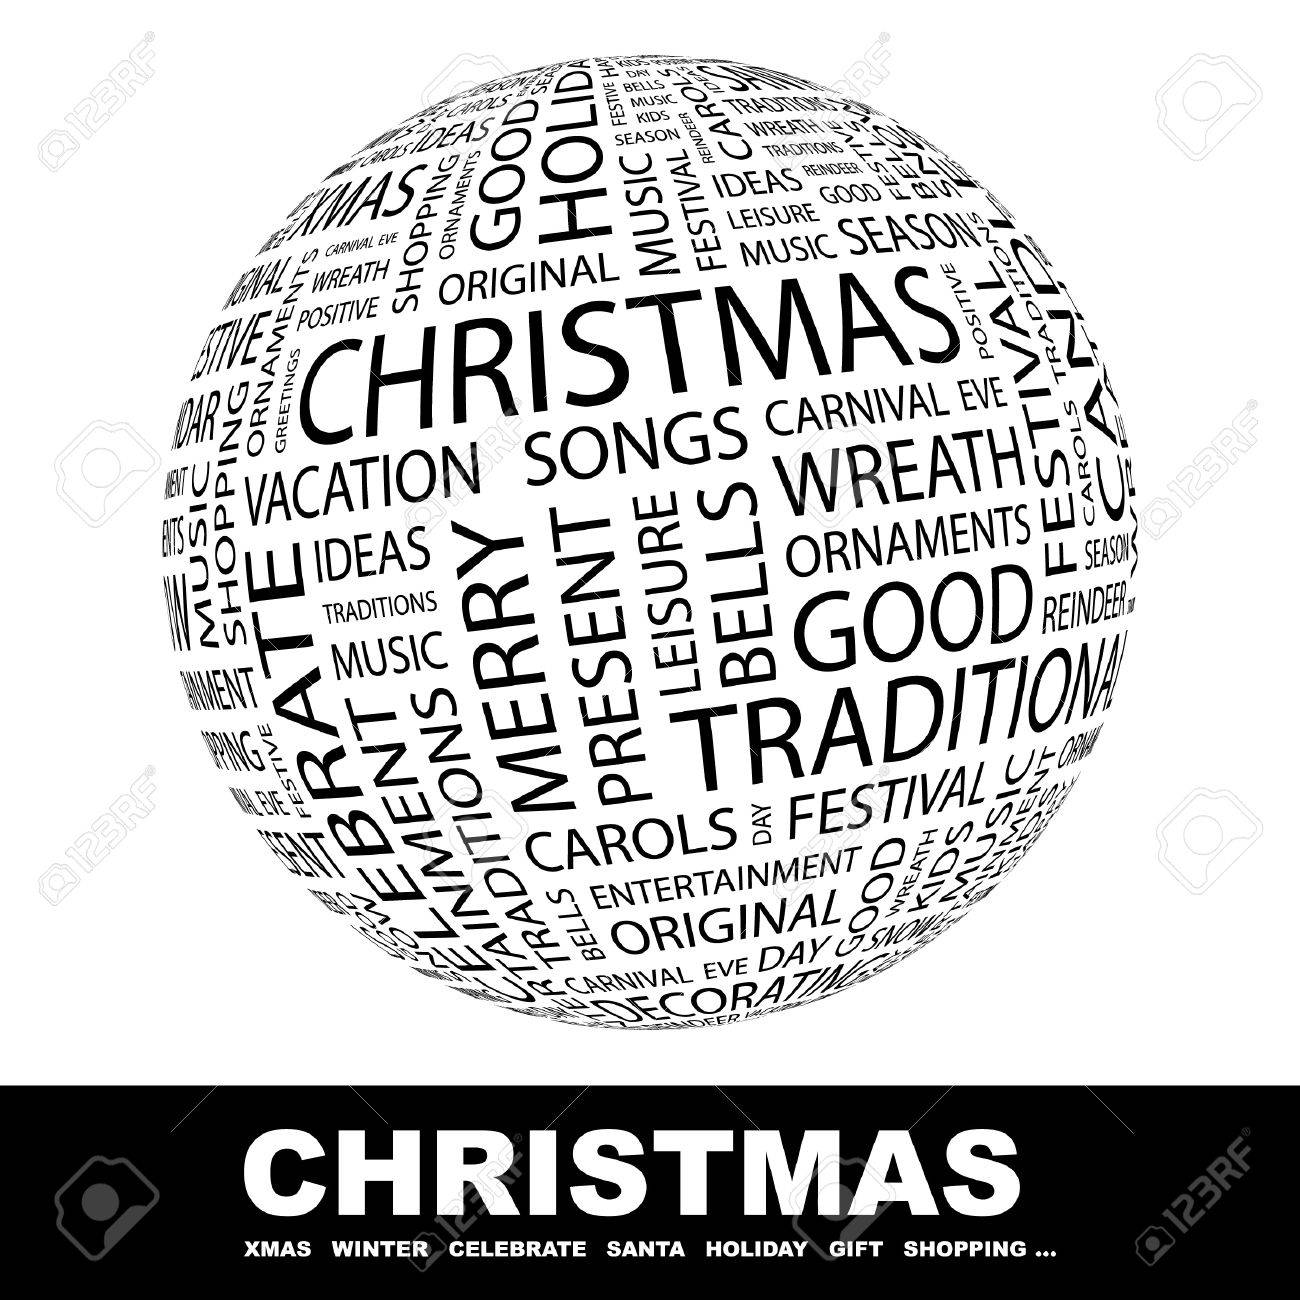 CHRISTMAS. Globe with different association terms. Wordcloud vector illustration. Stock Vector - 8840363